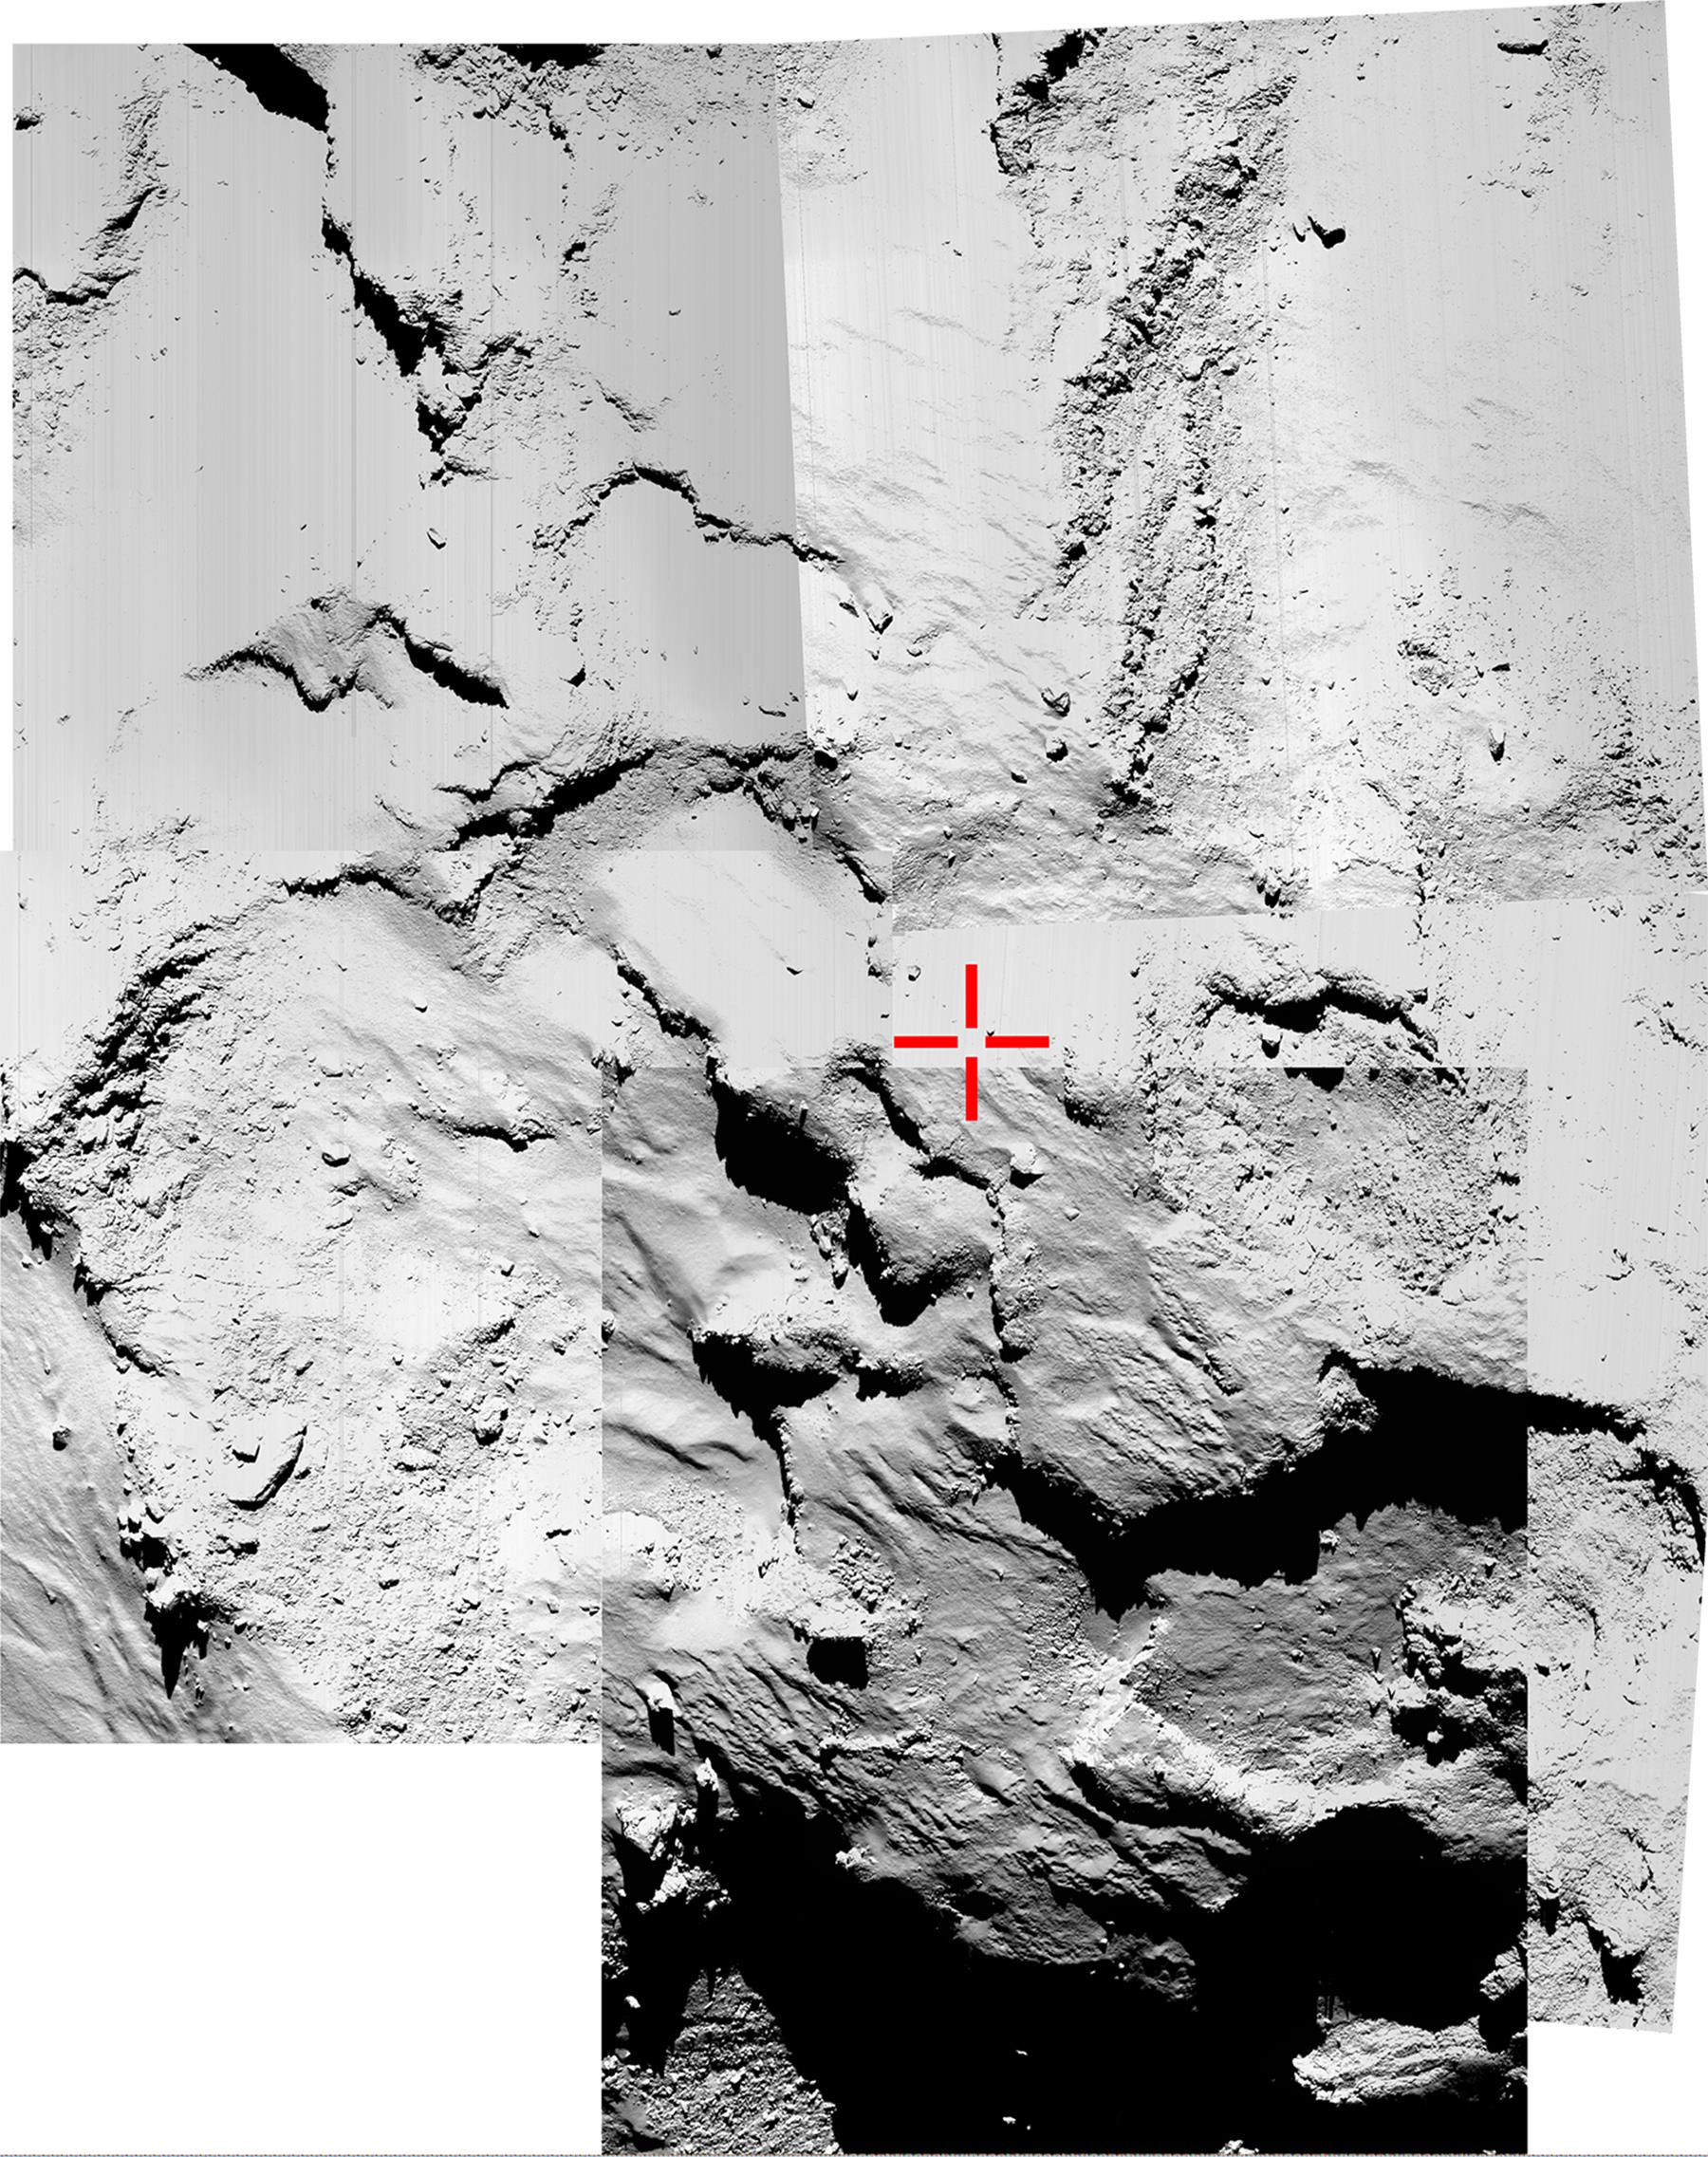 Comet Update: What's Next for the Philae Lander? - NBC News